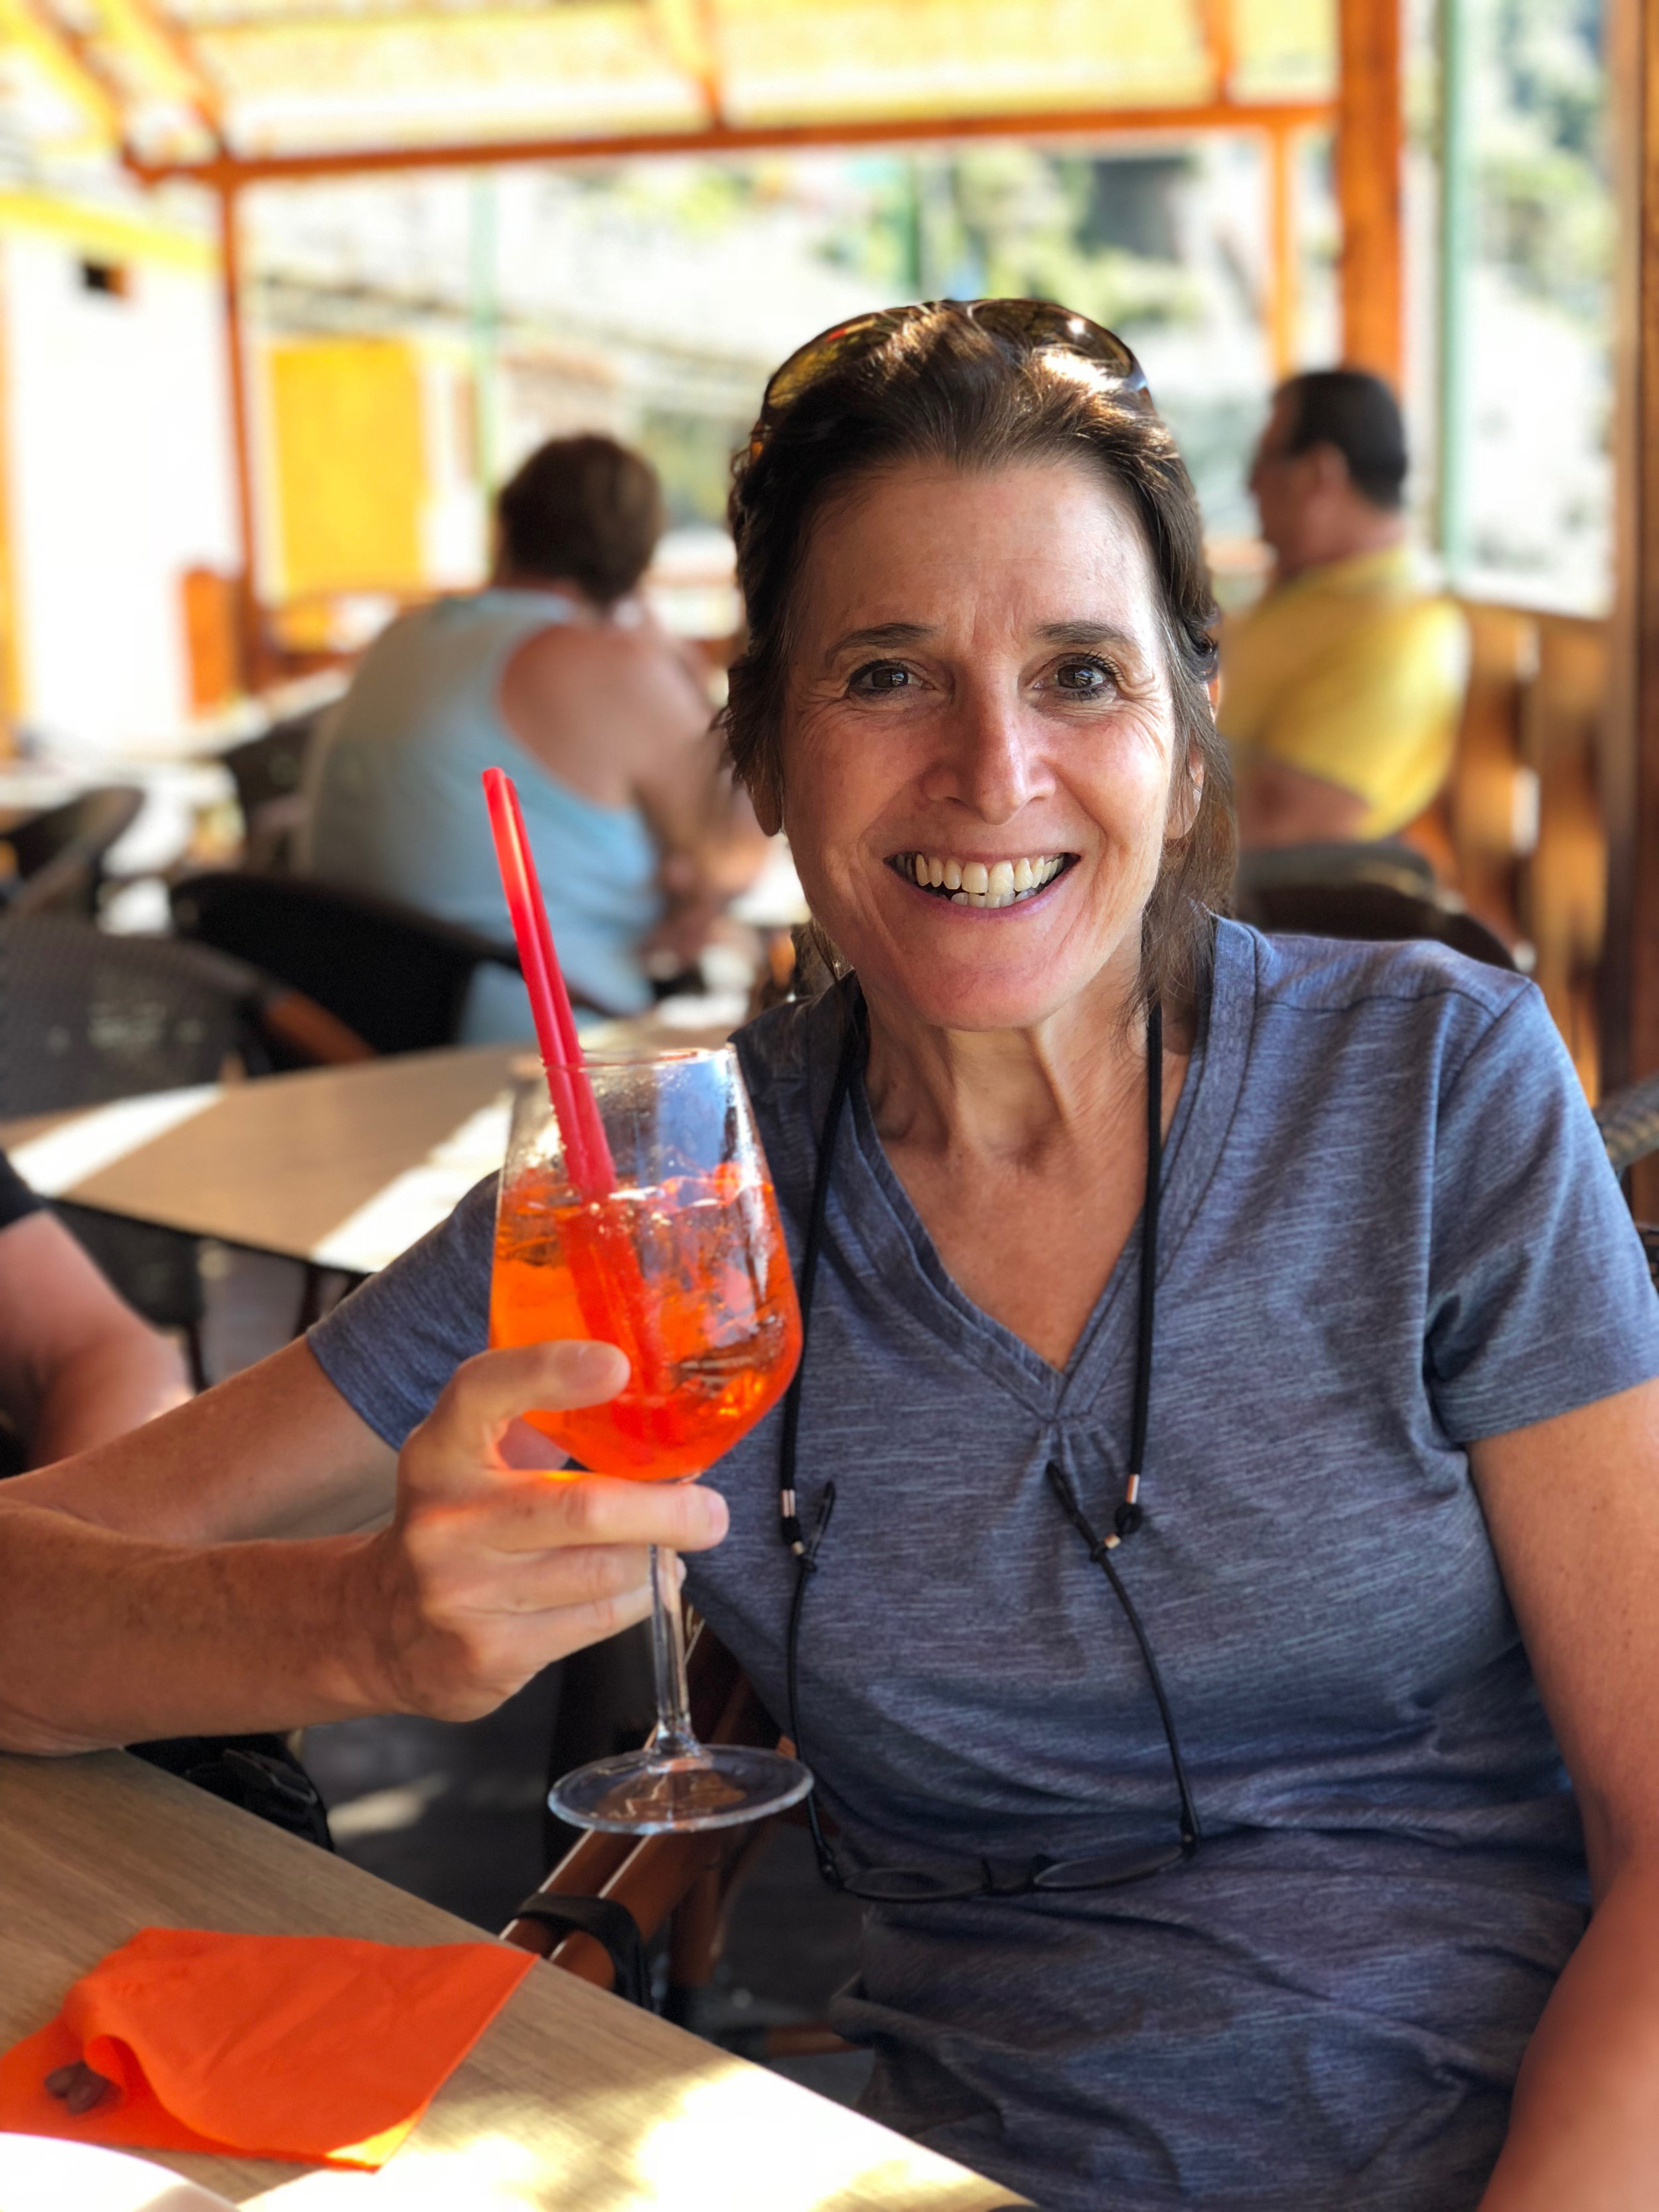 jo rewards herself with a spritz after biking along the ligurian coast